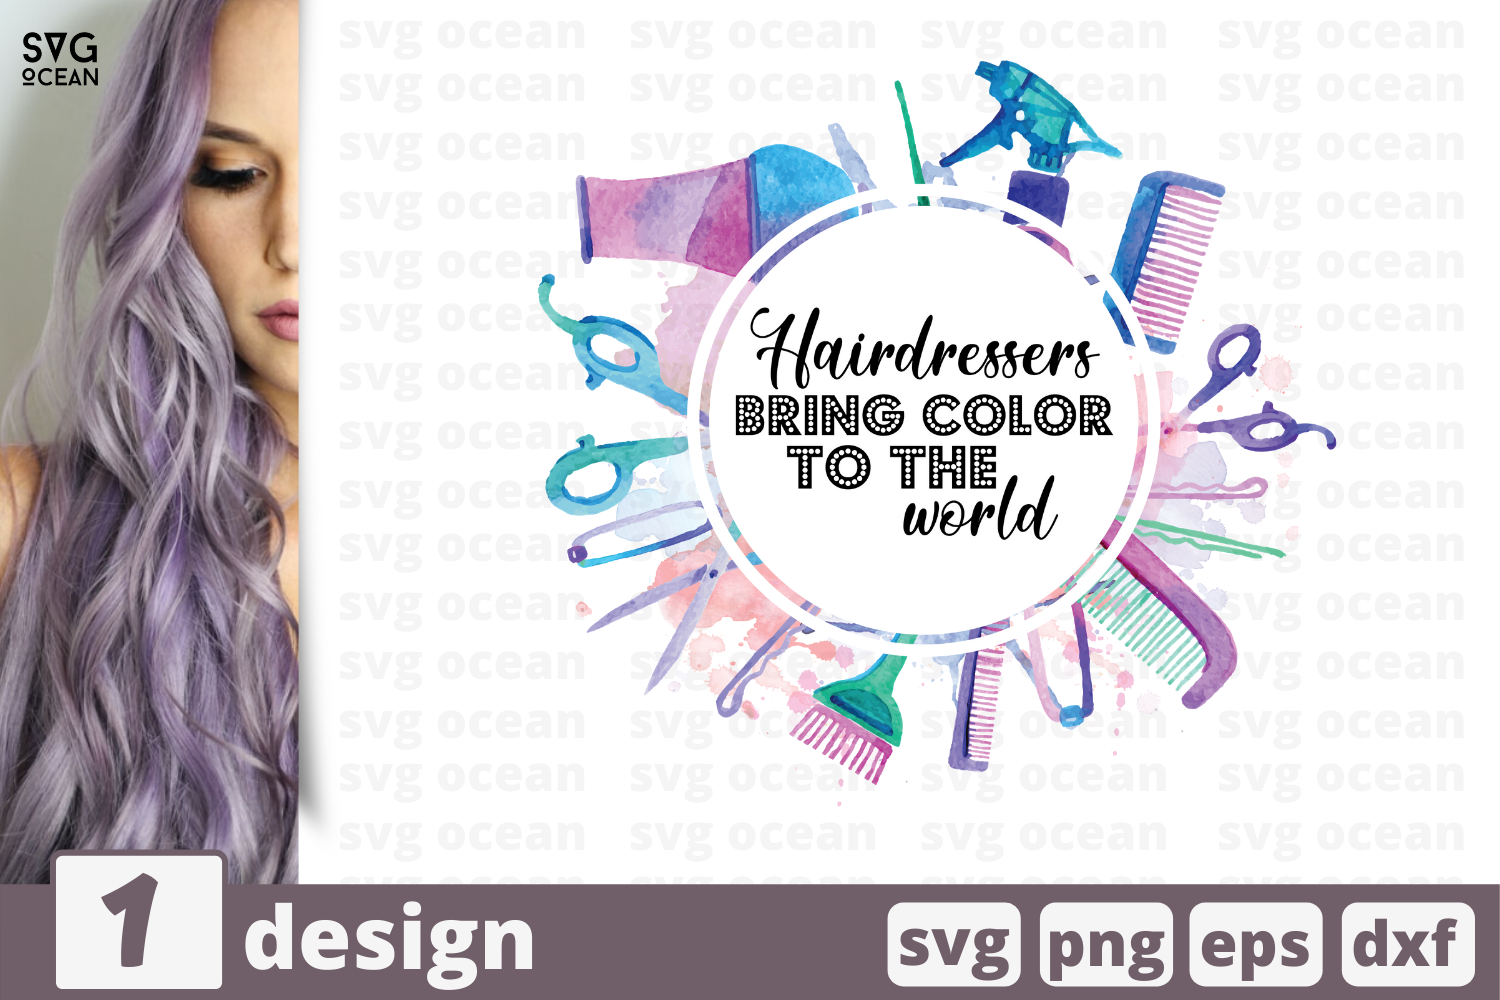 Download Free Hairdresser Bring Color To The World Graphic By Svgocean for Cricut Explore, Silhouette and other cutting machines.